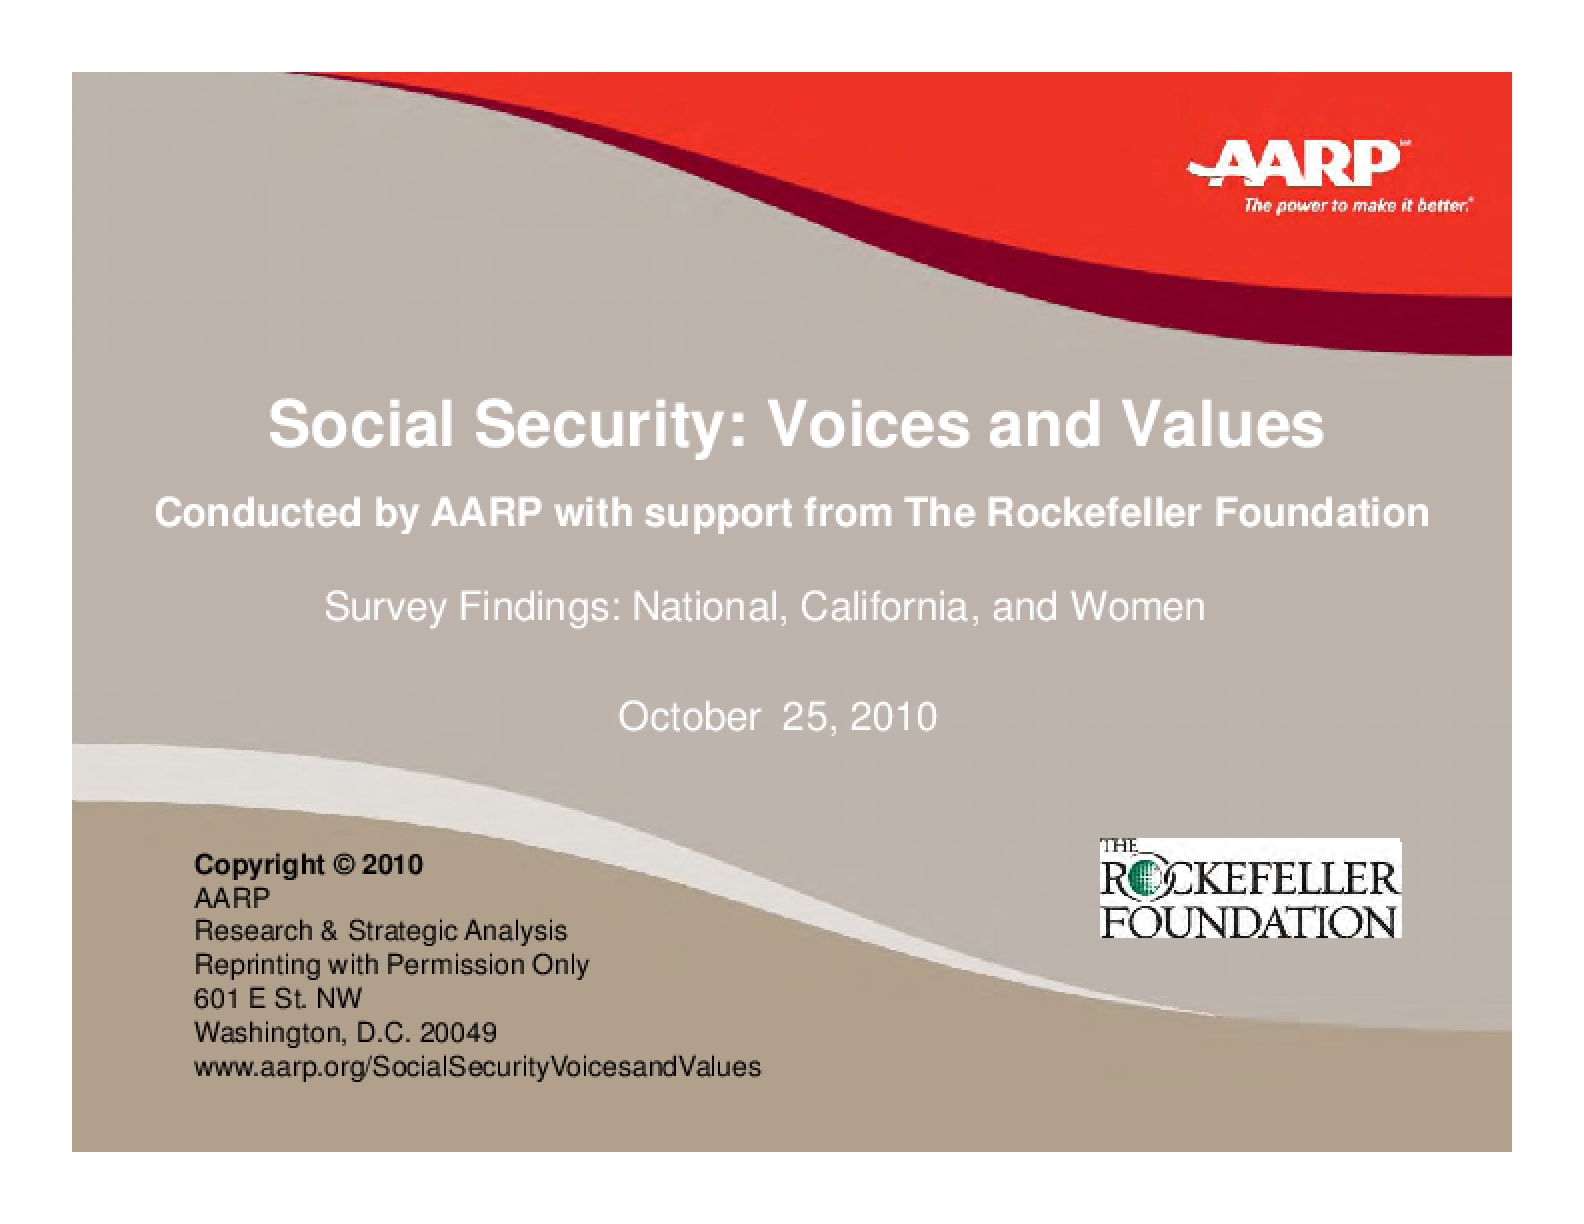 Social Security: Voices and Values